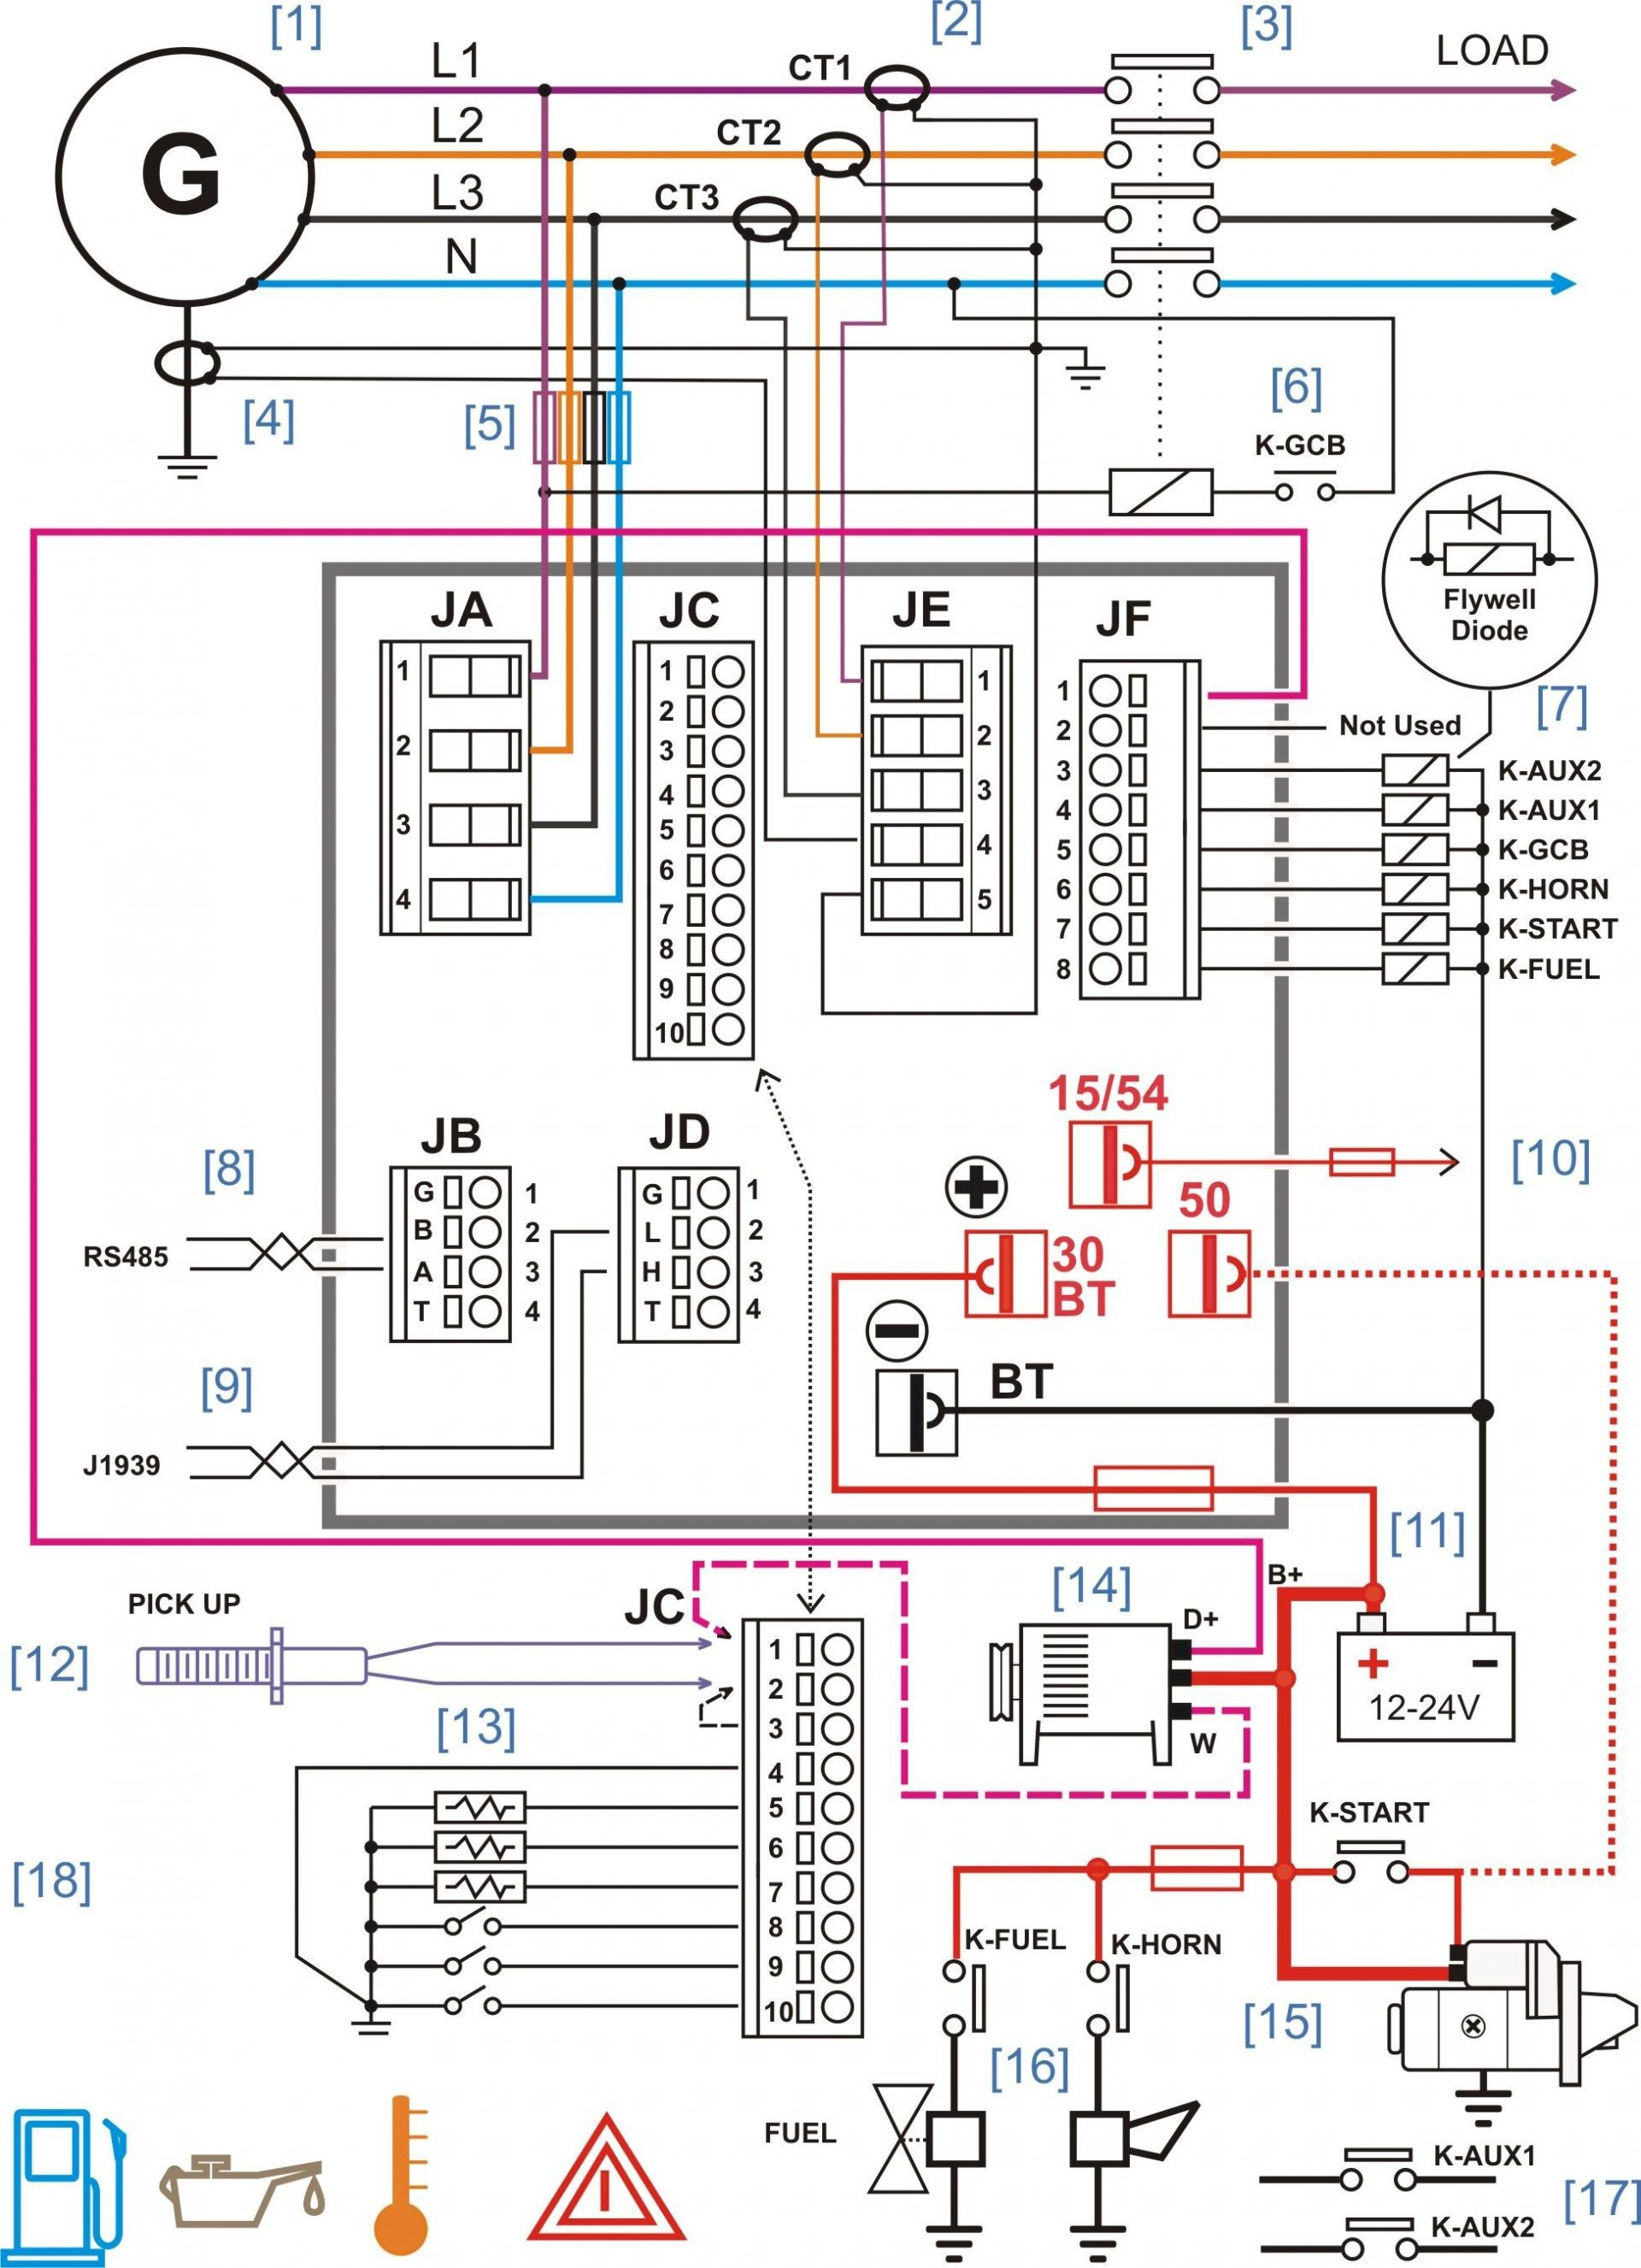 Funky Rv Solar Panel Wiring Diagram Elaboration - Electrical System on 24v solar panel specifications, 24v battery charger diagram, water pump wiring diagram, dual battery wiring diagram,